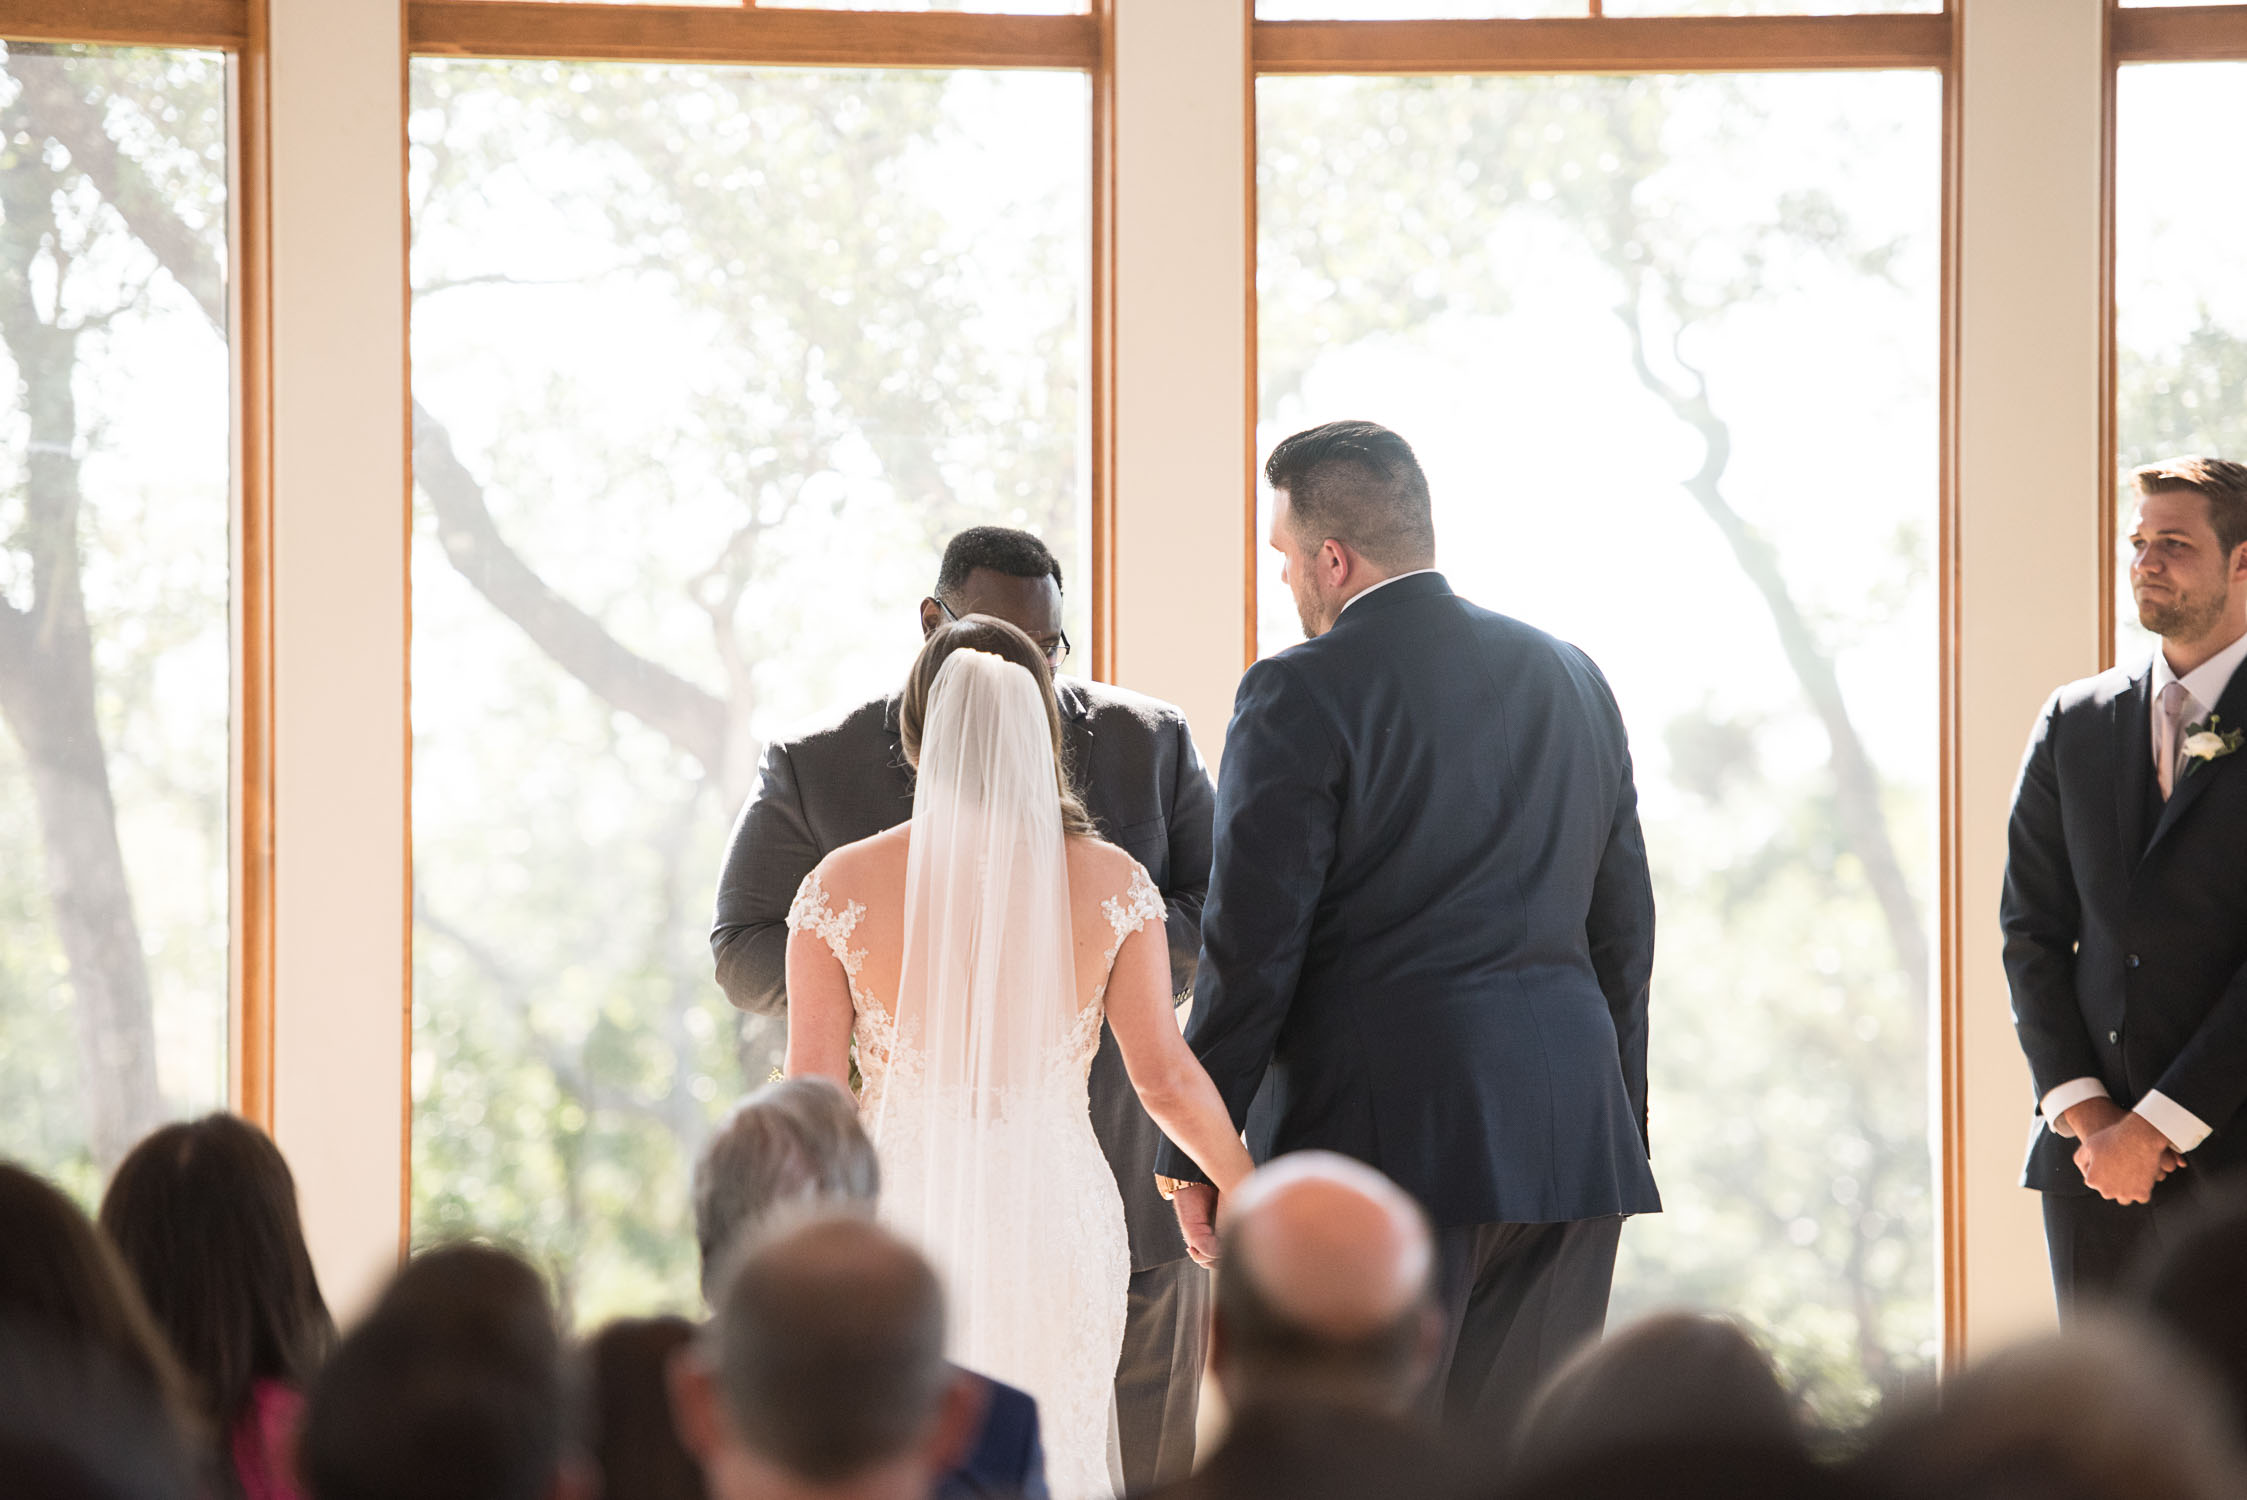 Hinton Wedding at Canyonwood Ridge Dripping Springs Texas Wedding Photography-91.jpg